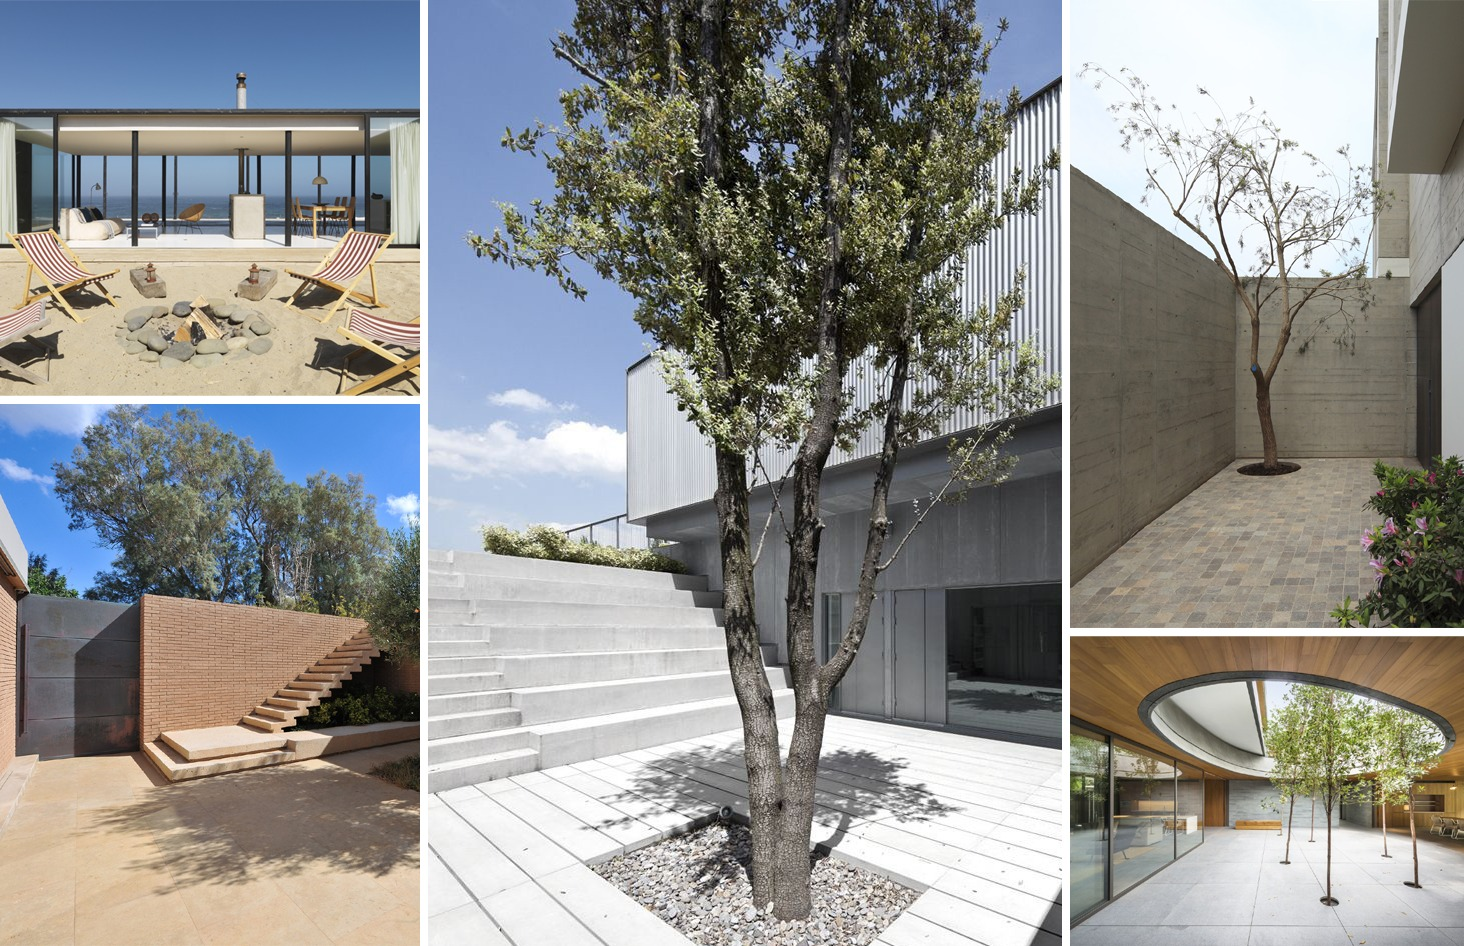 13 stunning inner courtyards archdaily for Casas minimalistas con jardin